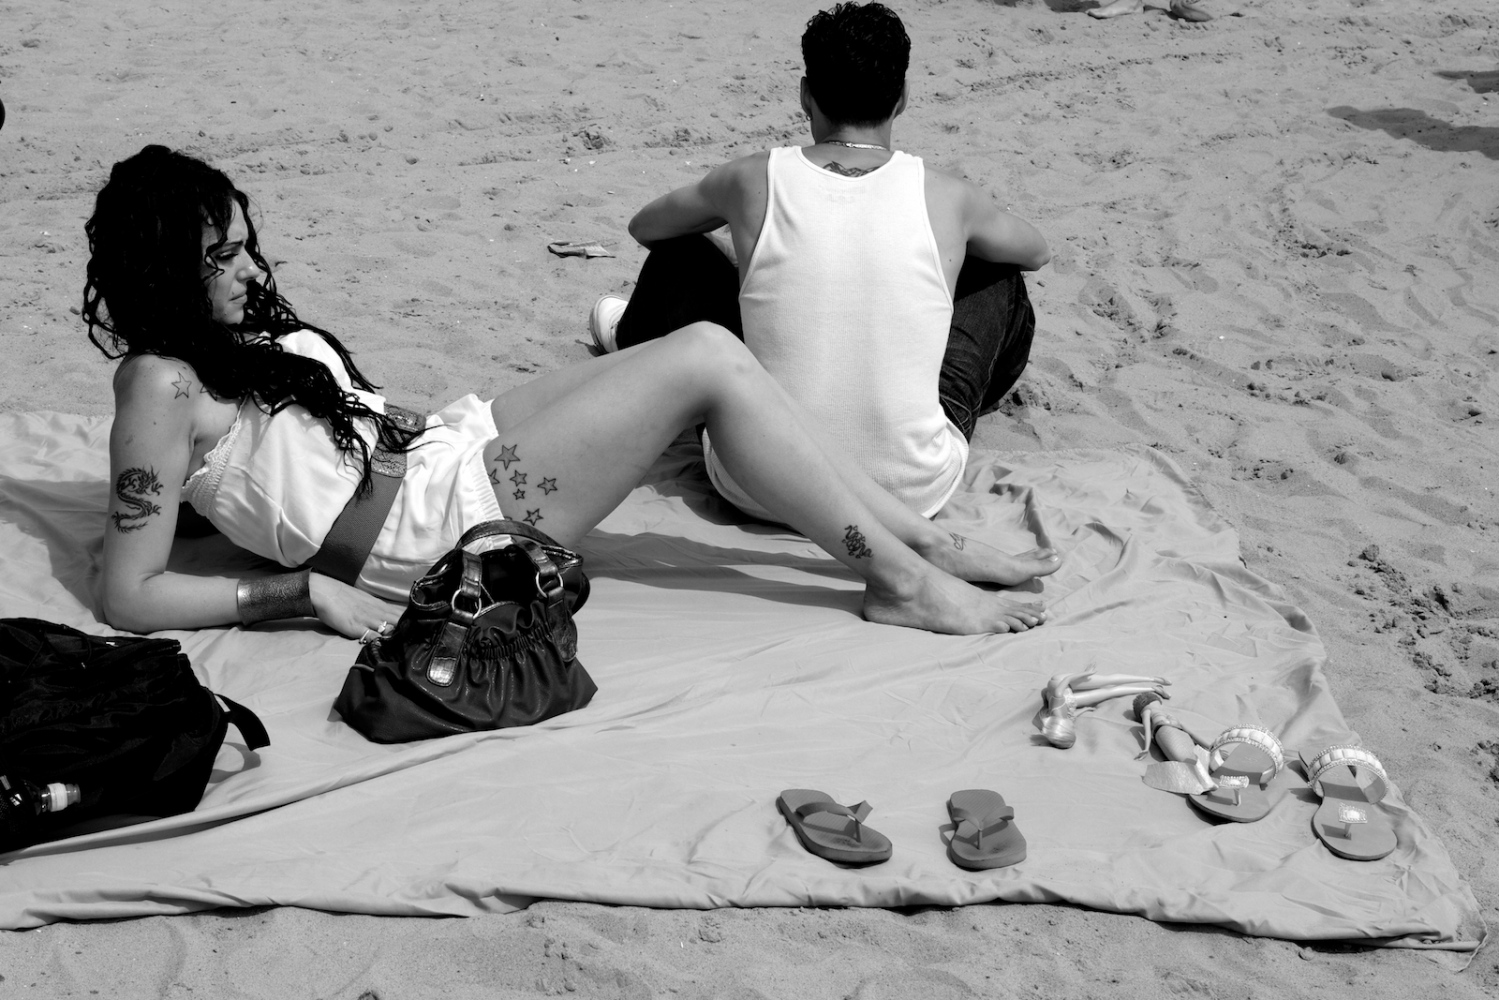 Lover's Quarrel. Coney Island, NY, Summer 2011